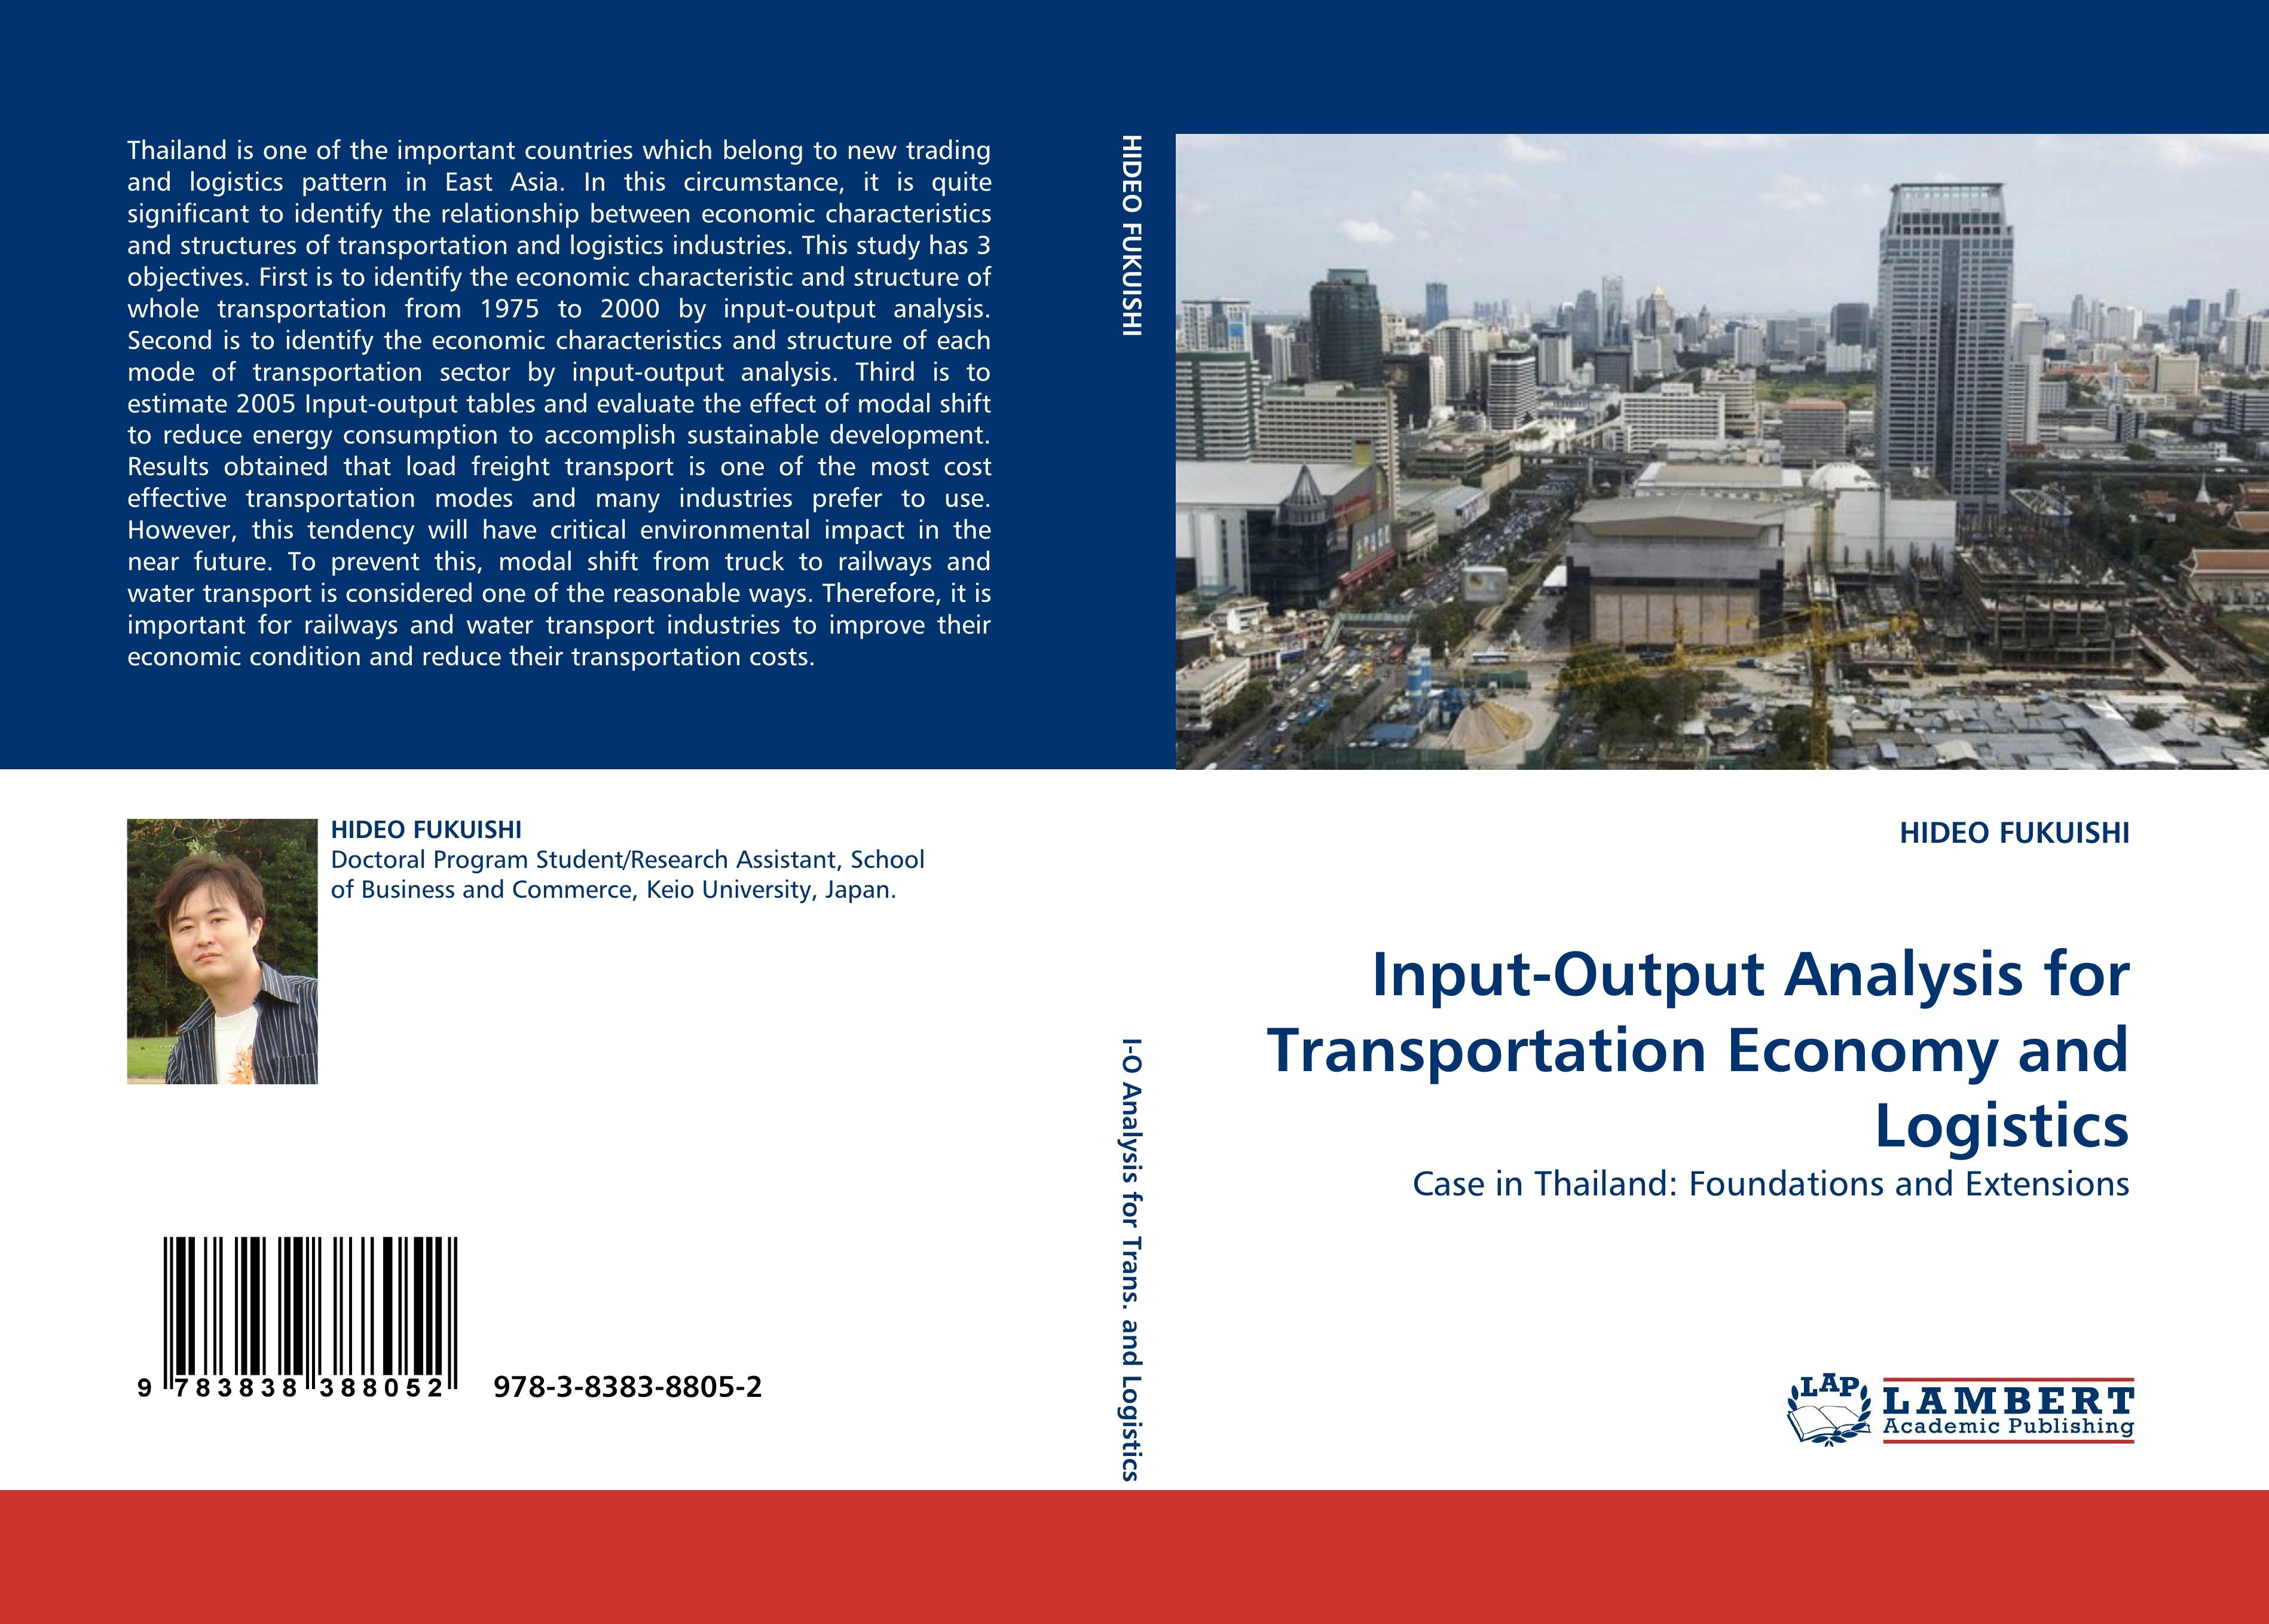 Input-Output Analysis for Transportation Economy and Logistics  Case in Thailand: Foundations and Extensions  Hideo Fukuishi  Taschenbuch  Paperback  Englisch  2010 - Fukuishi, Hideo